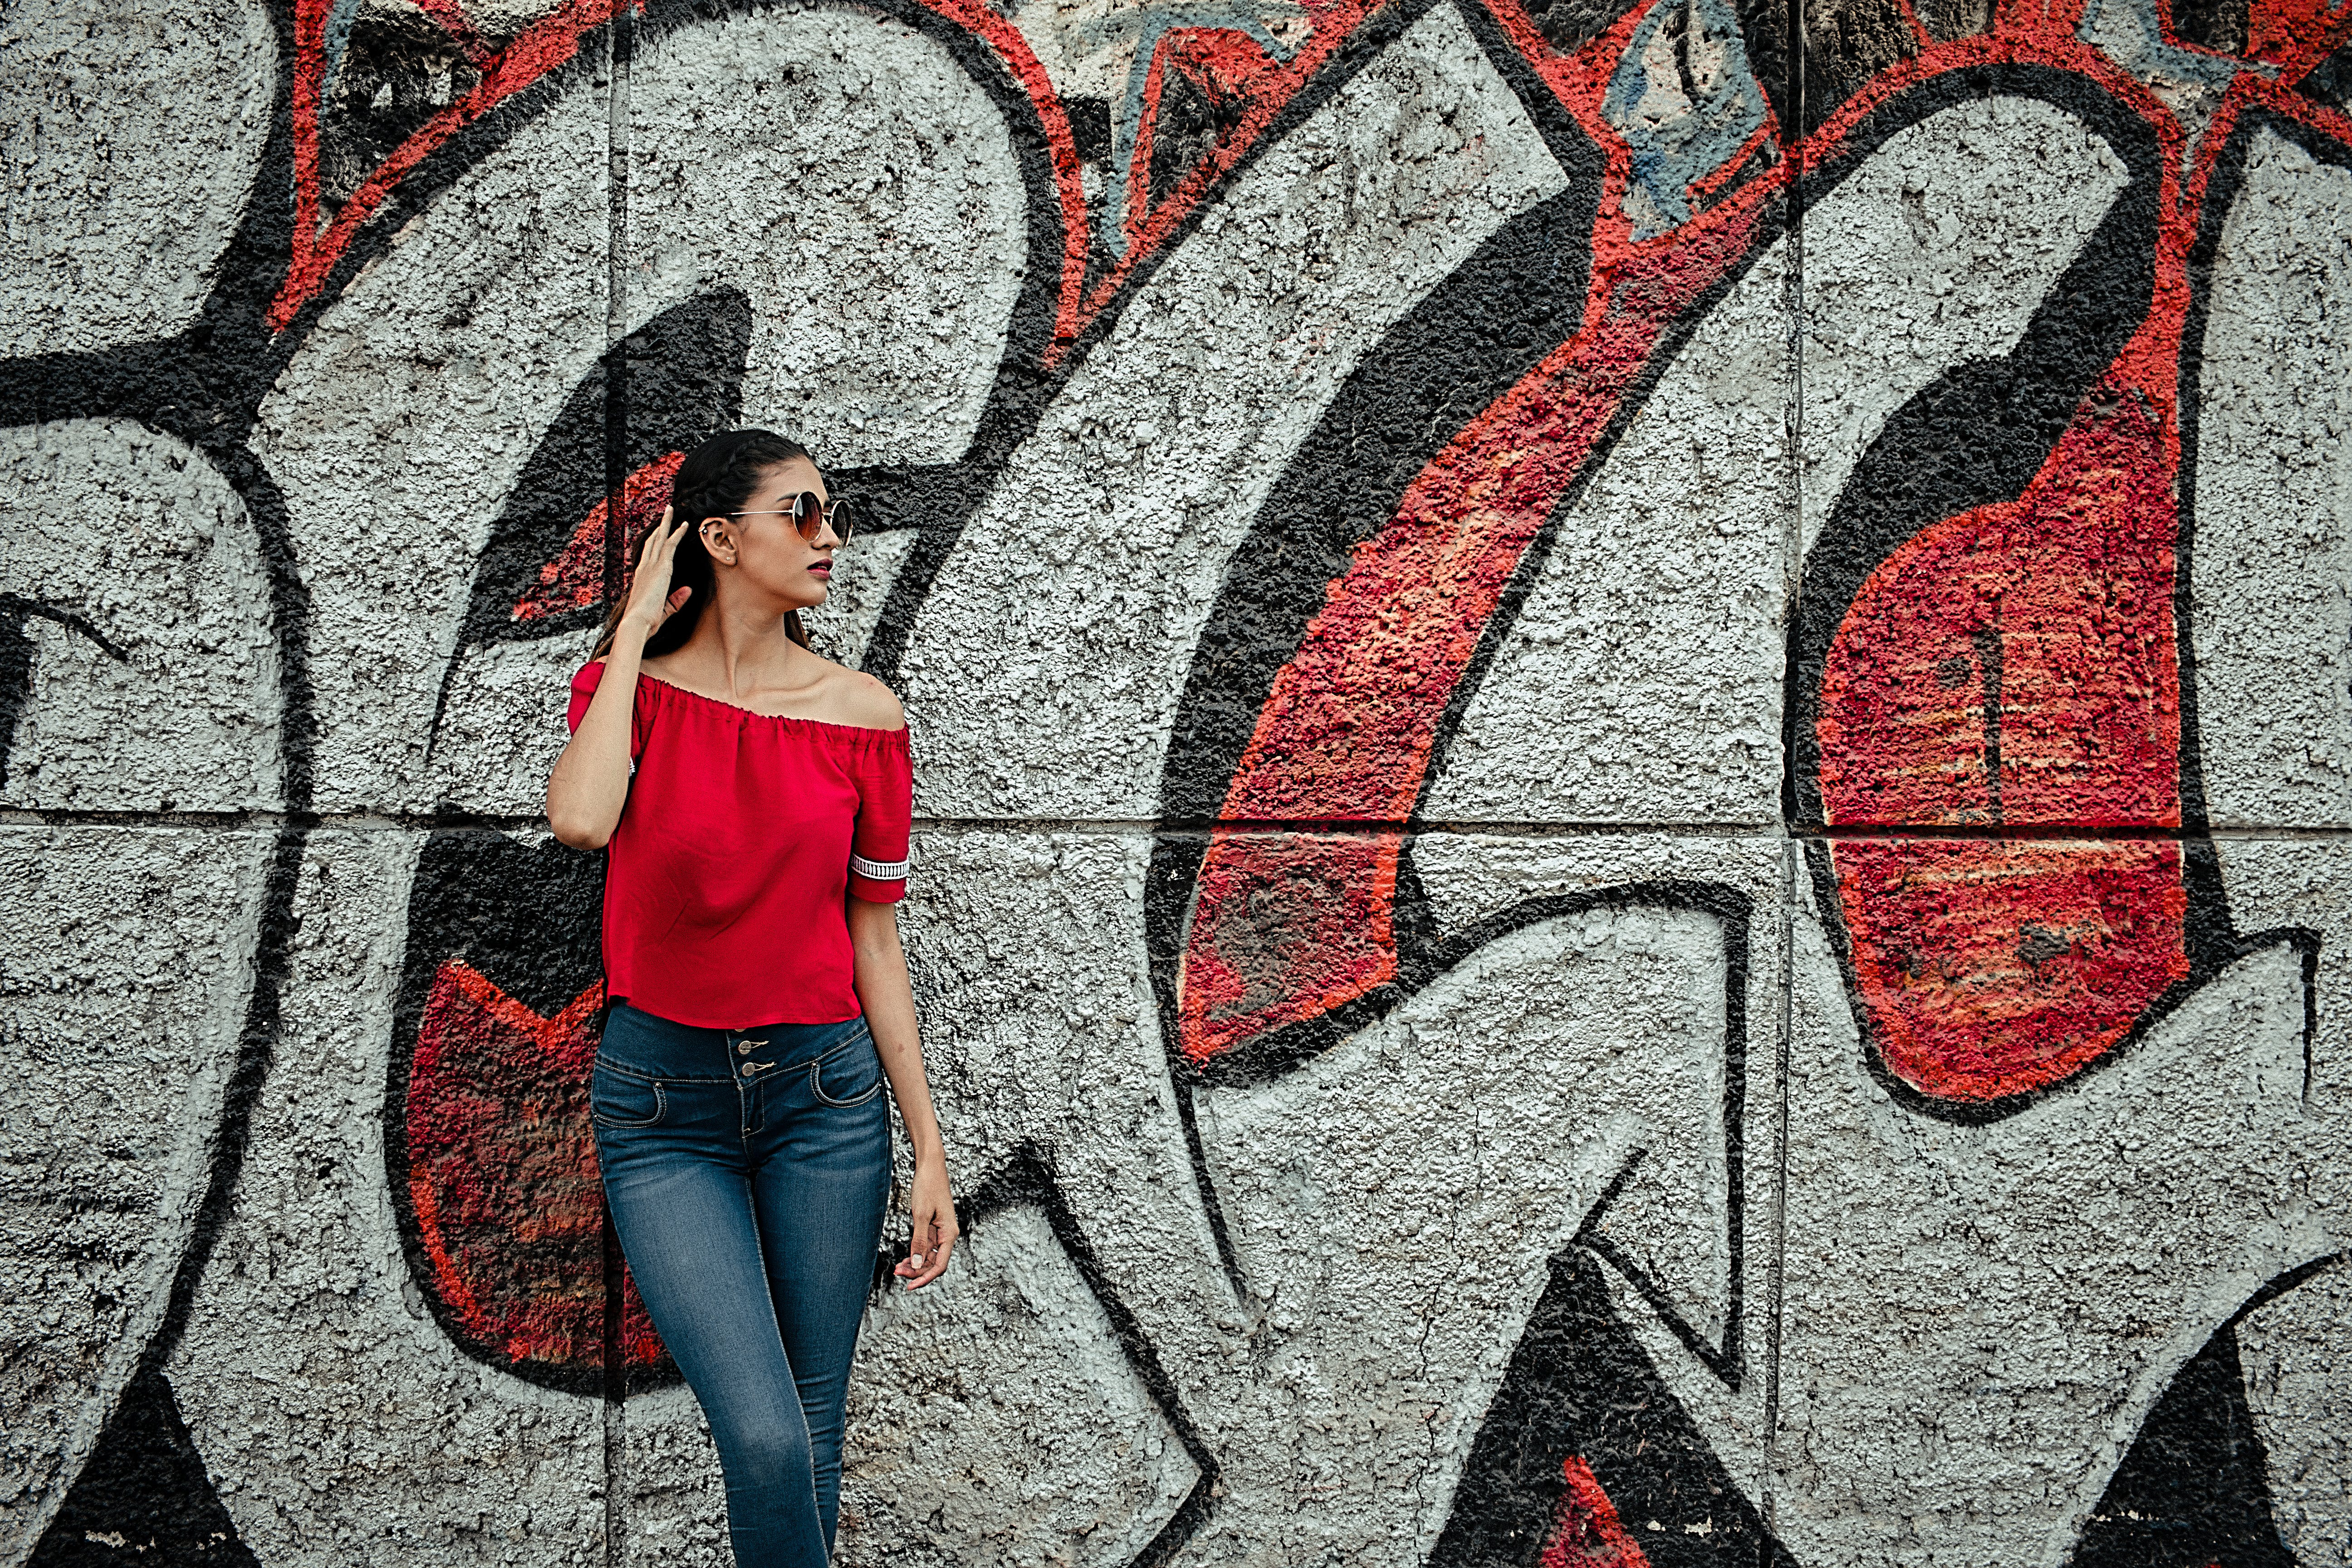 Woman Wearing Red Off-shoulder Shirt and Blue Denim Stone-wash Jeans Near Red and Gray Graffiti Wall